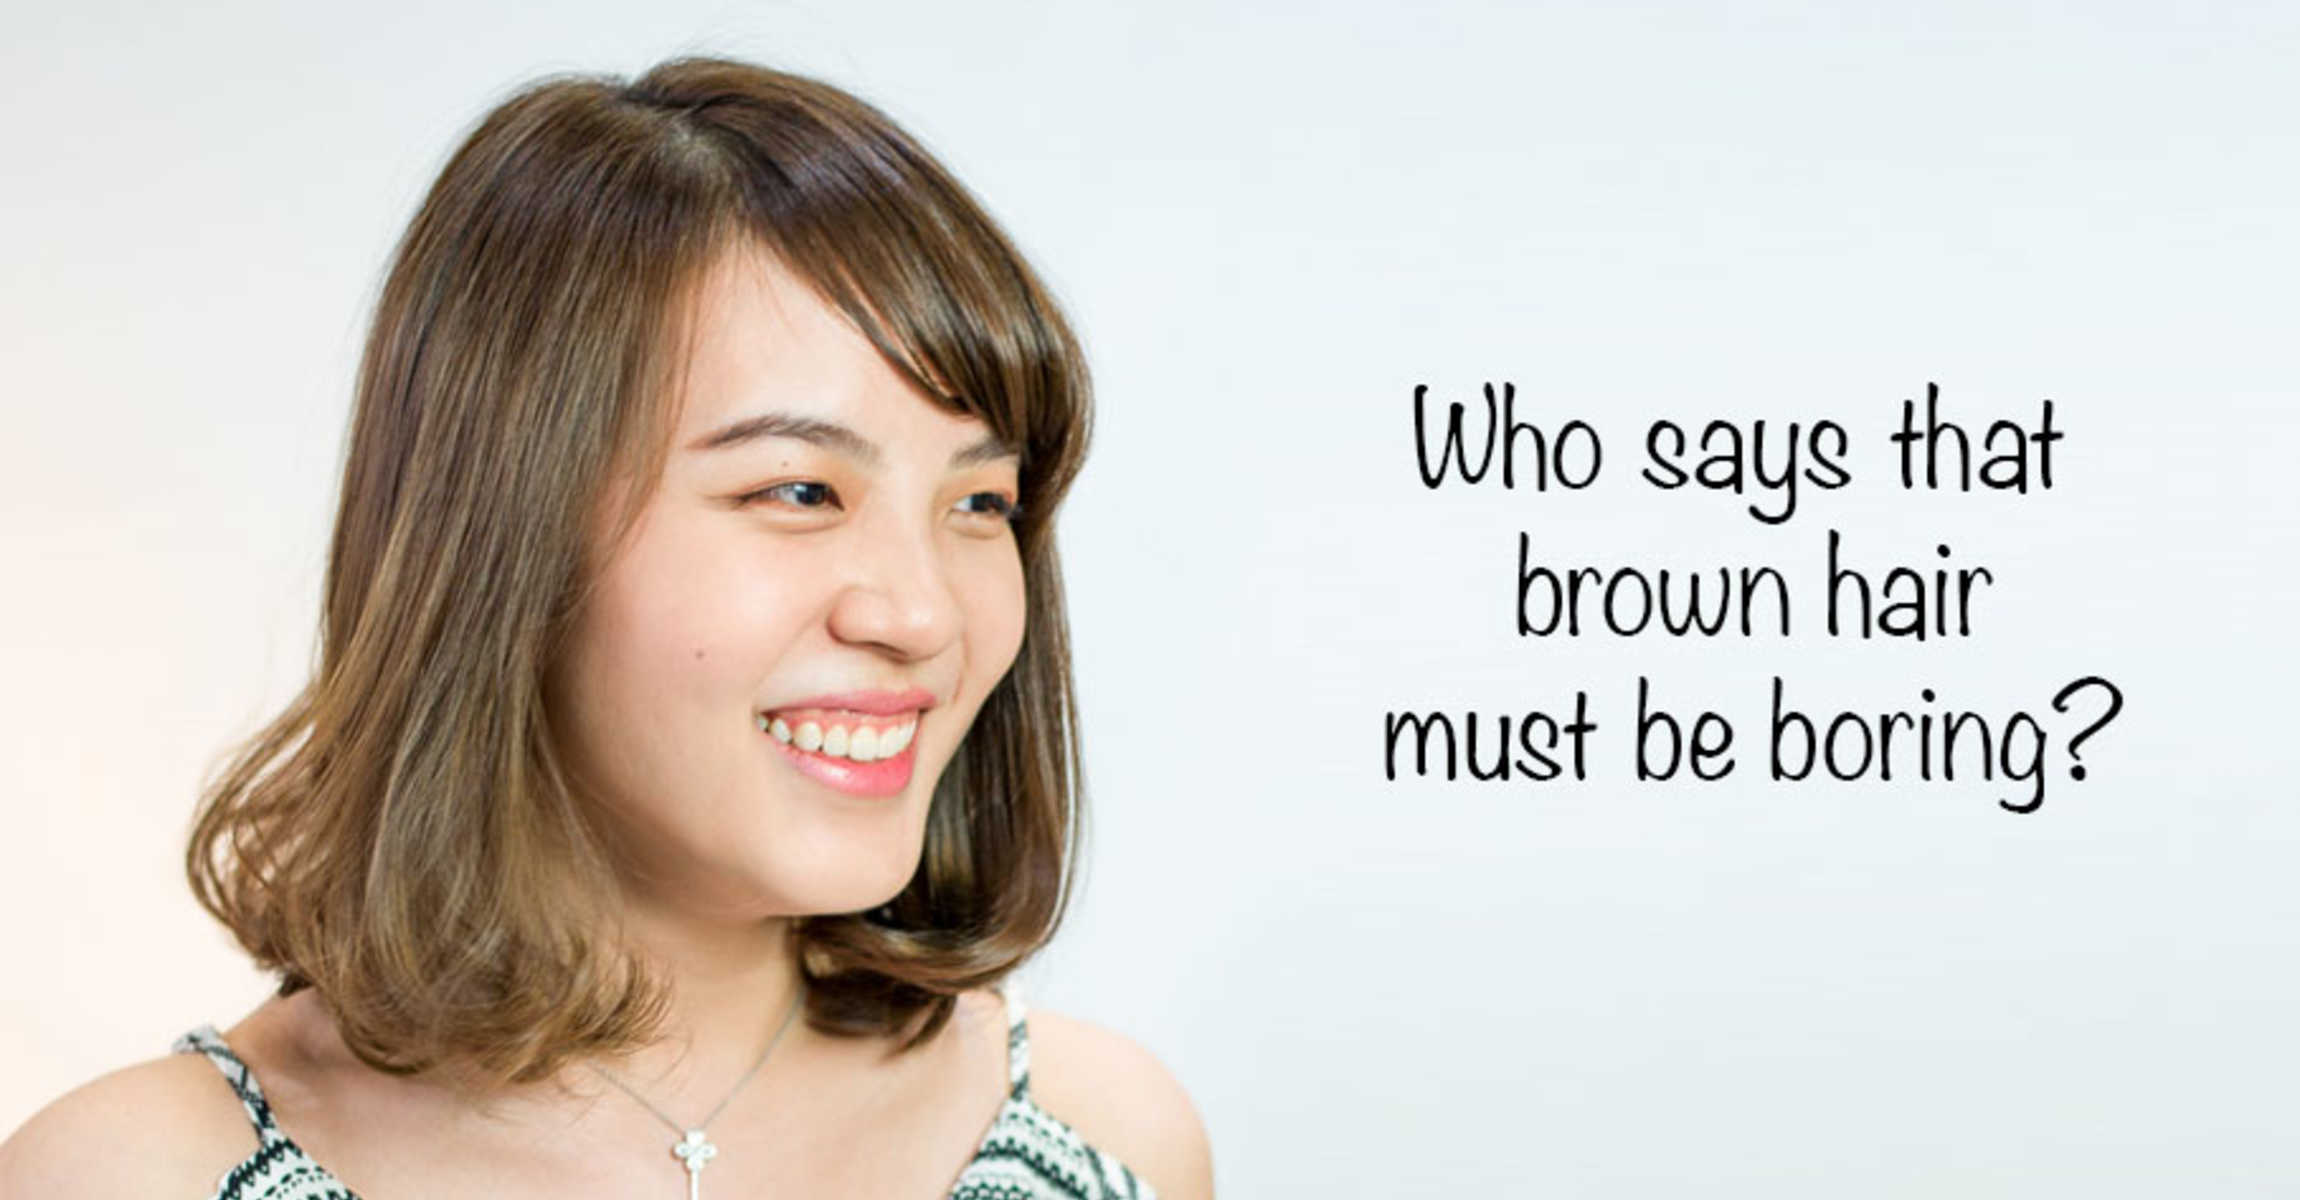 6 reasons why brown hair is anything but boring